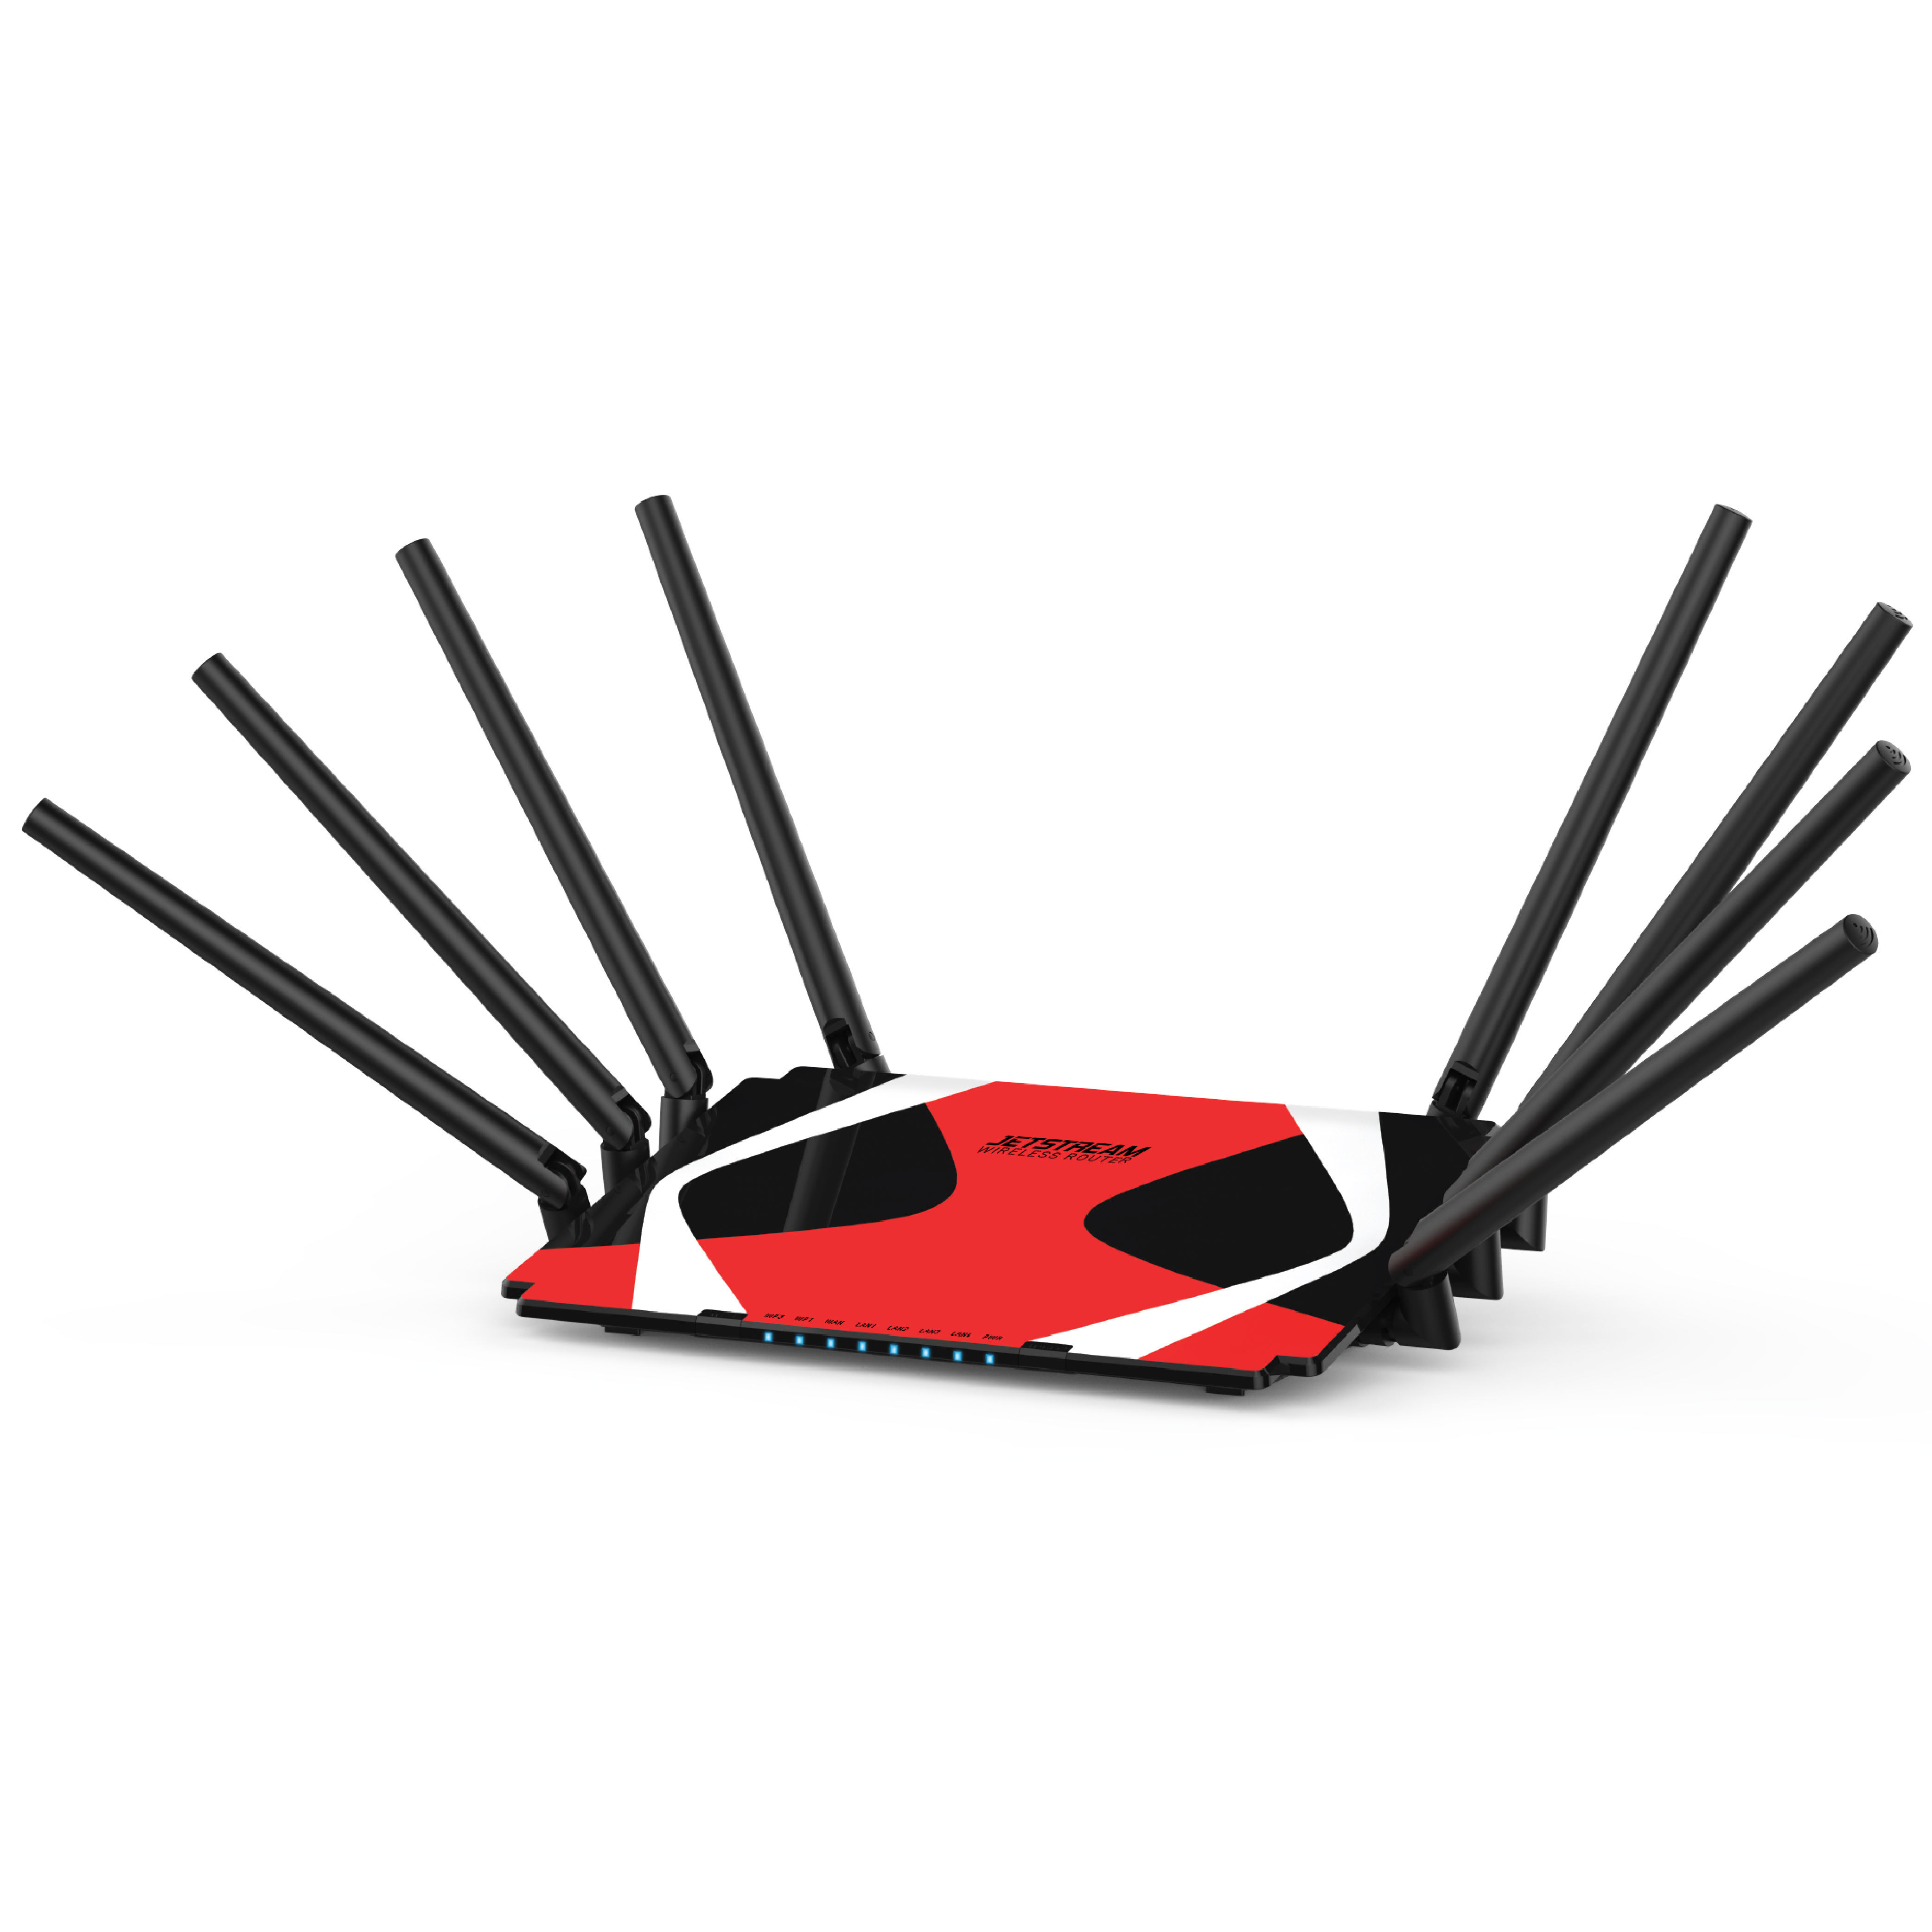 Jetstream AC3000 Ducati Tri-Band Wi-Fi Gaming Router with 1 GB RAM and 800 MHz Dual-Core Processing - Walmart Exclusive!